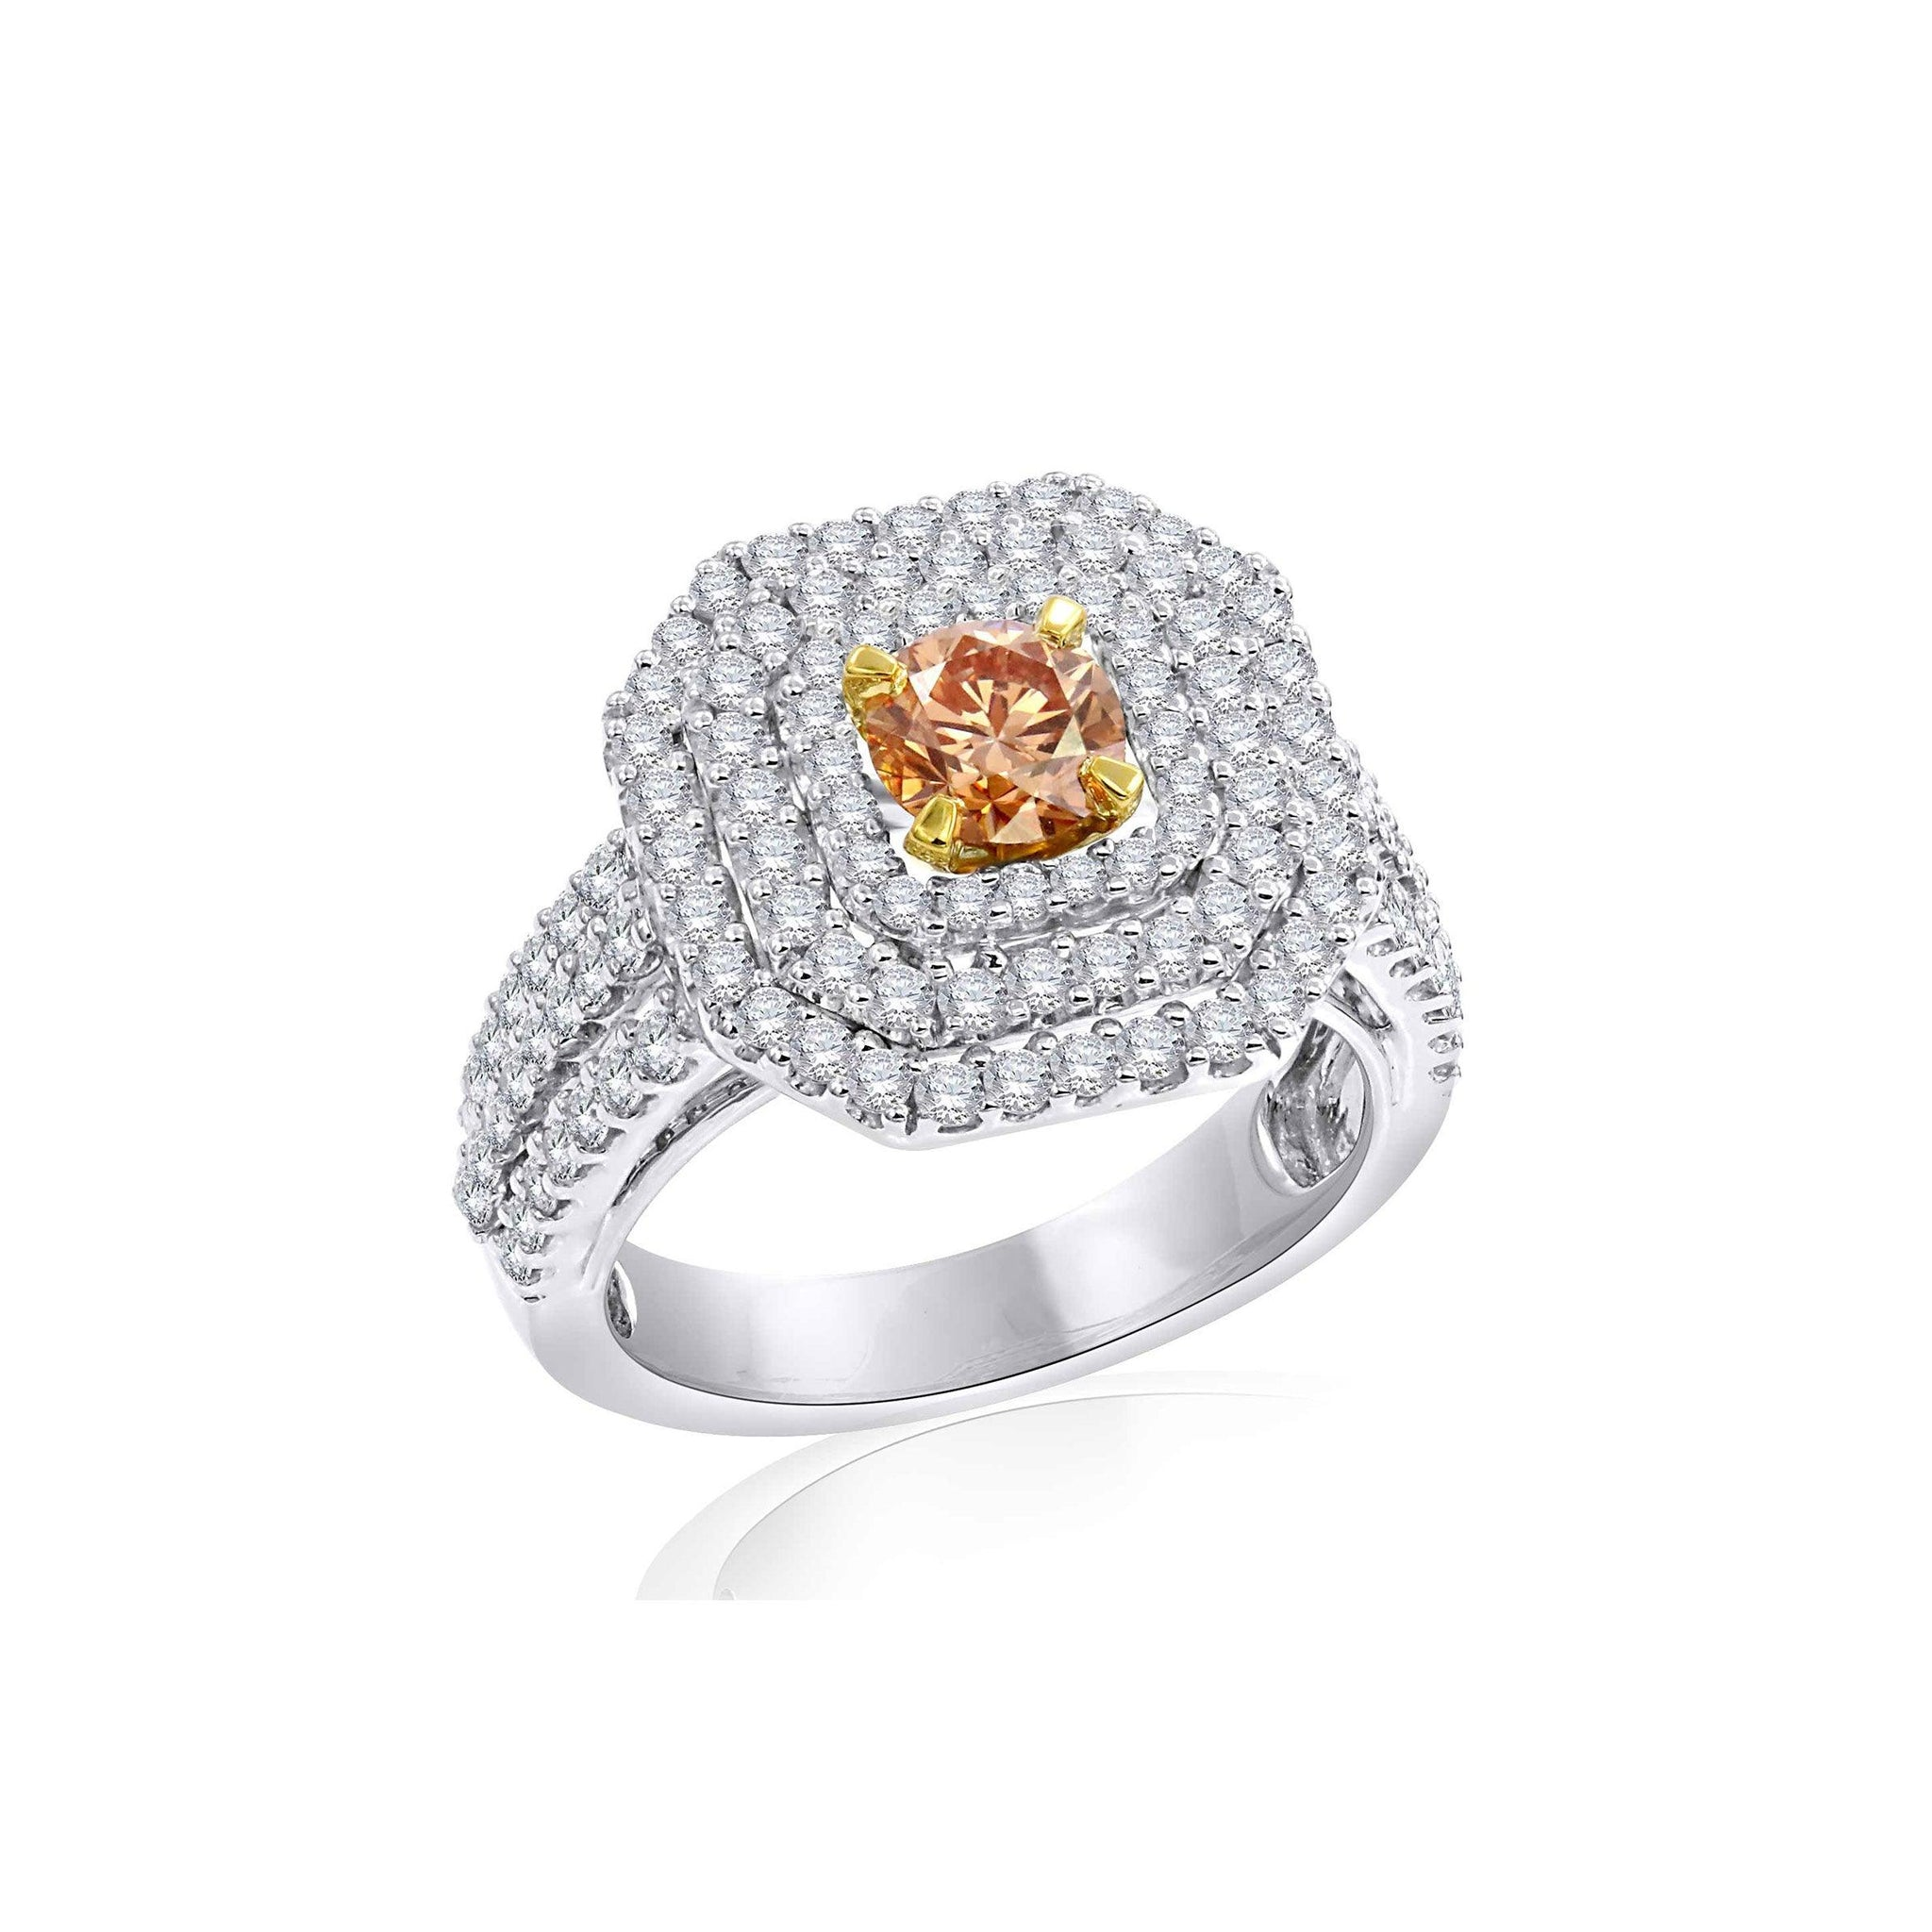 1.80 Ct. T.W. Lab-Grown Orange And White Diamond 14K White Gold Ring